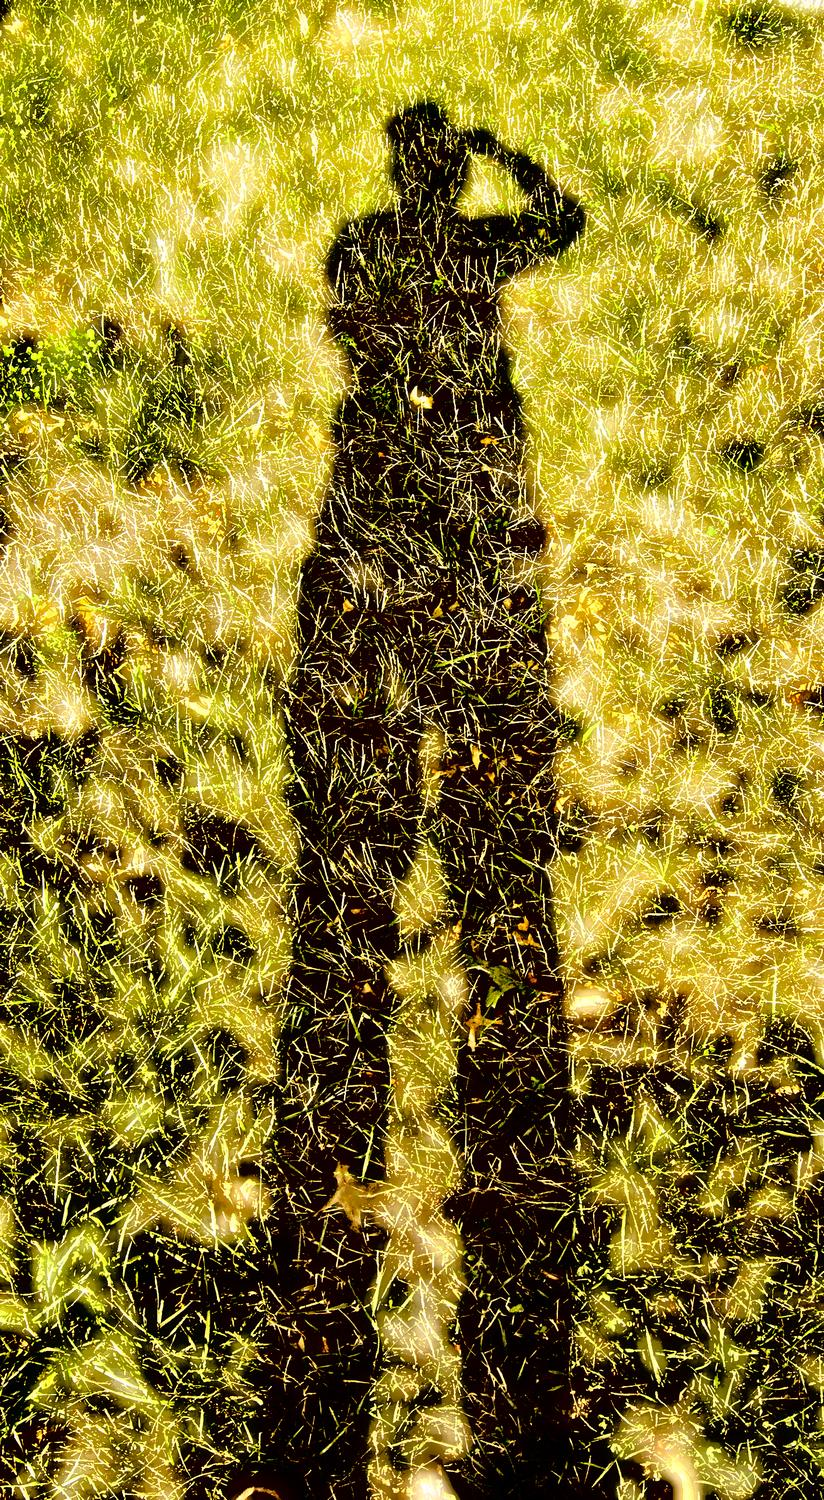 Shadow reflected in the grass - by Tony Karp - Me on grass - Techno-Impressionist Museum - Techno-Impressionism - art - beautiful - photo photography picture - by Tony Karp